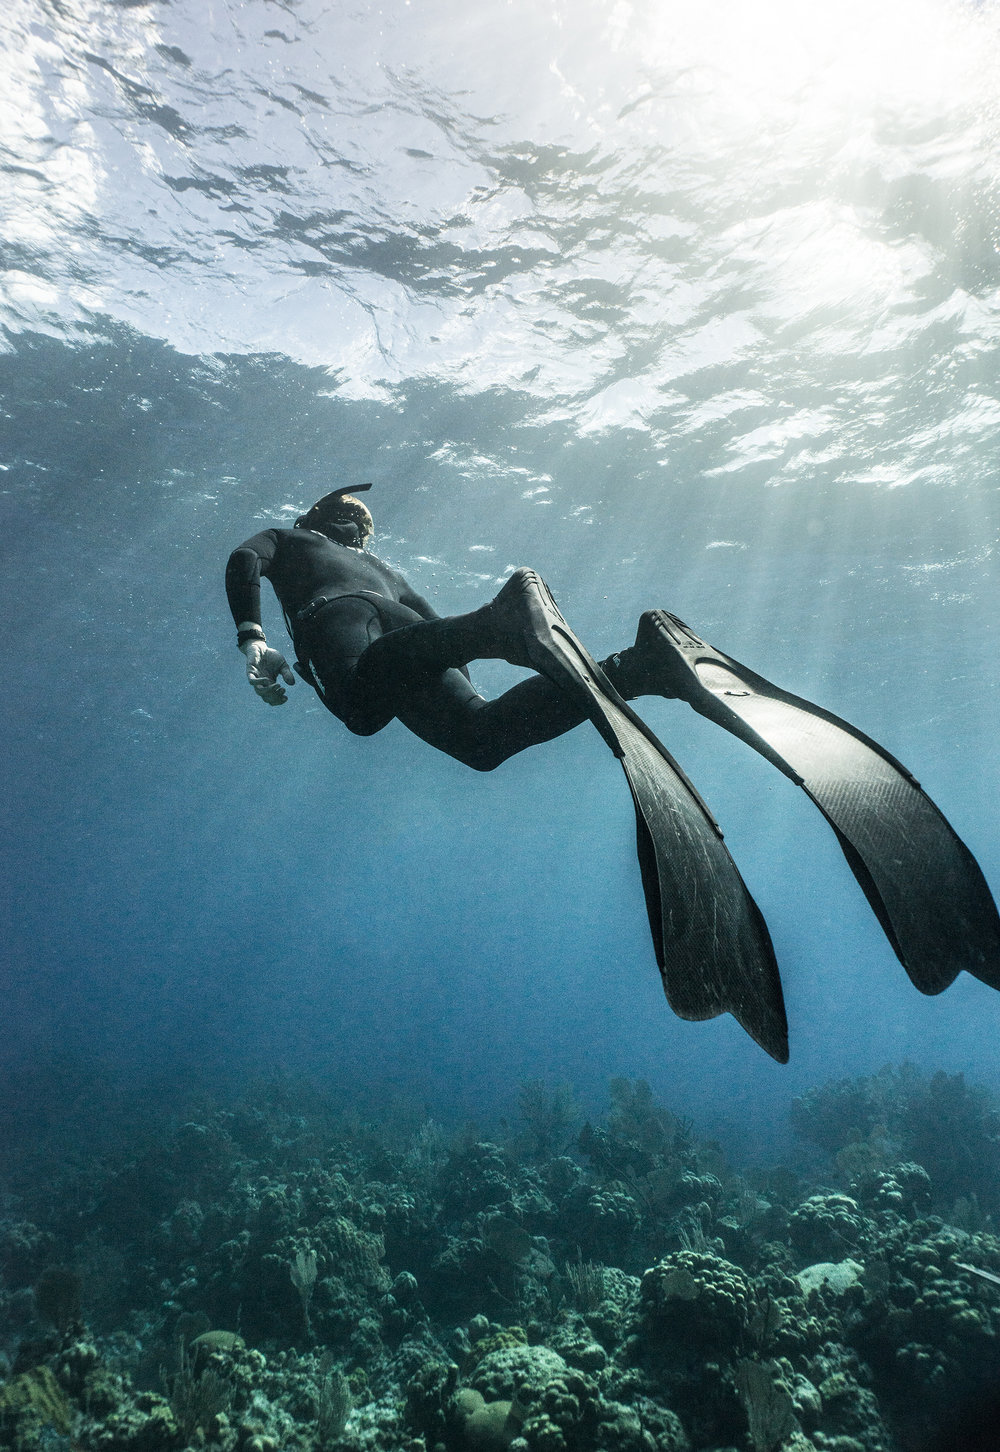 freediver credit: Amanda cotton / coral reef image bank